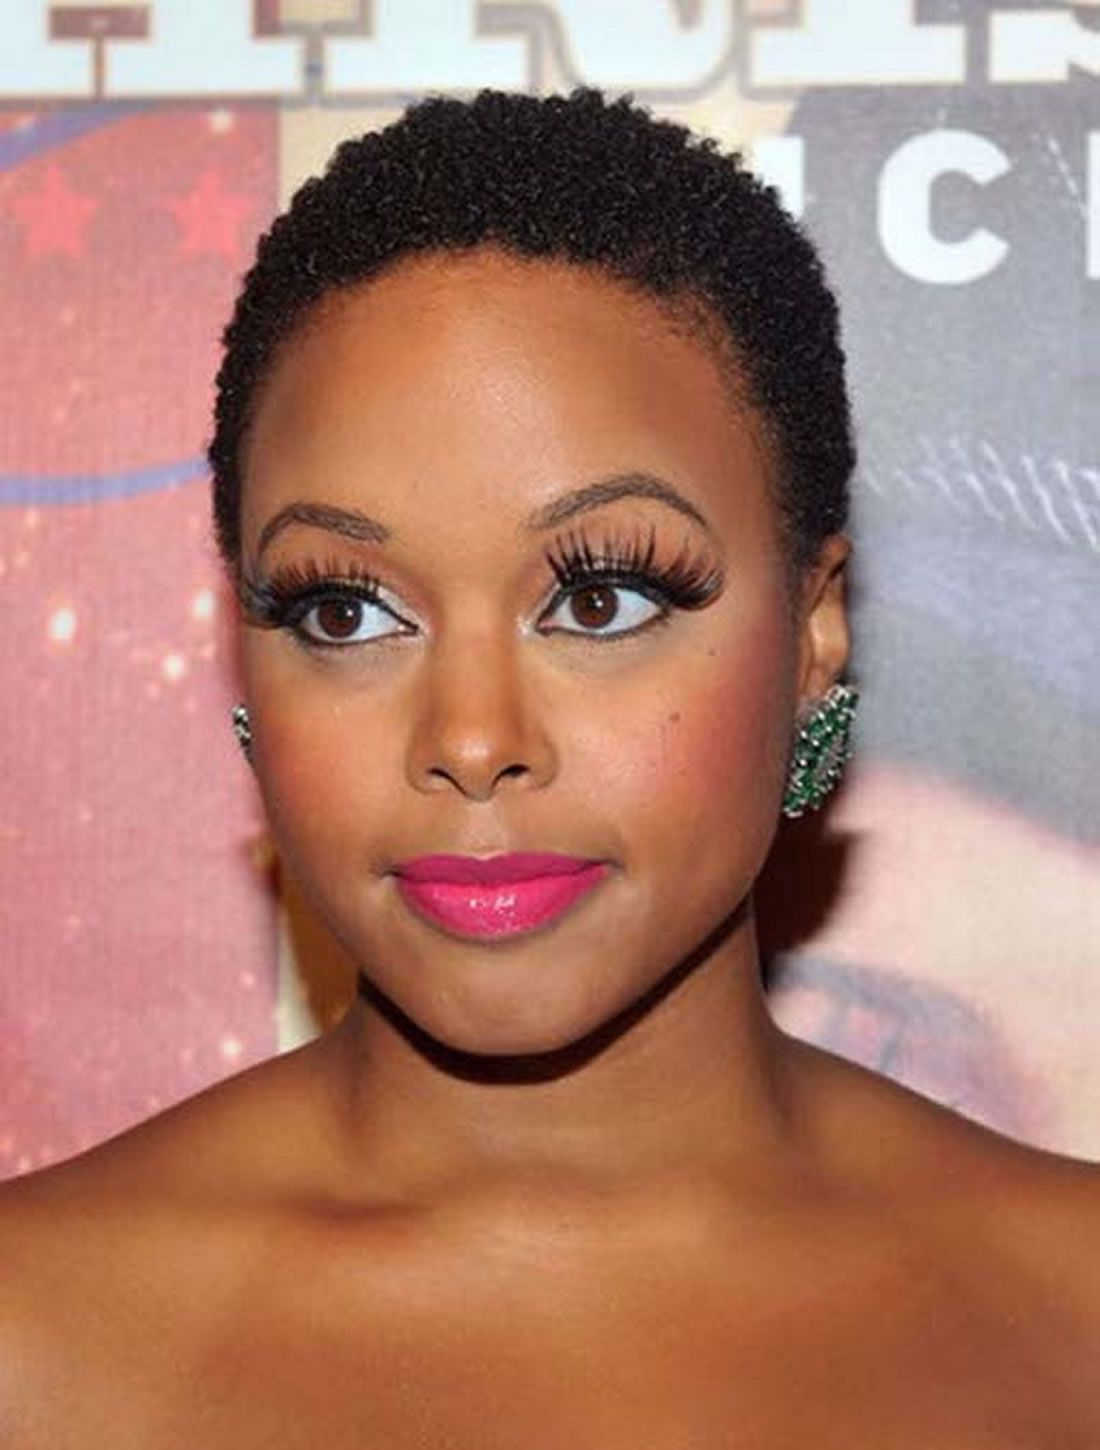 Short African American Hairstyles For Round Faces 2019 2020